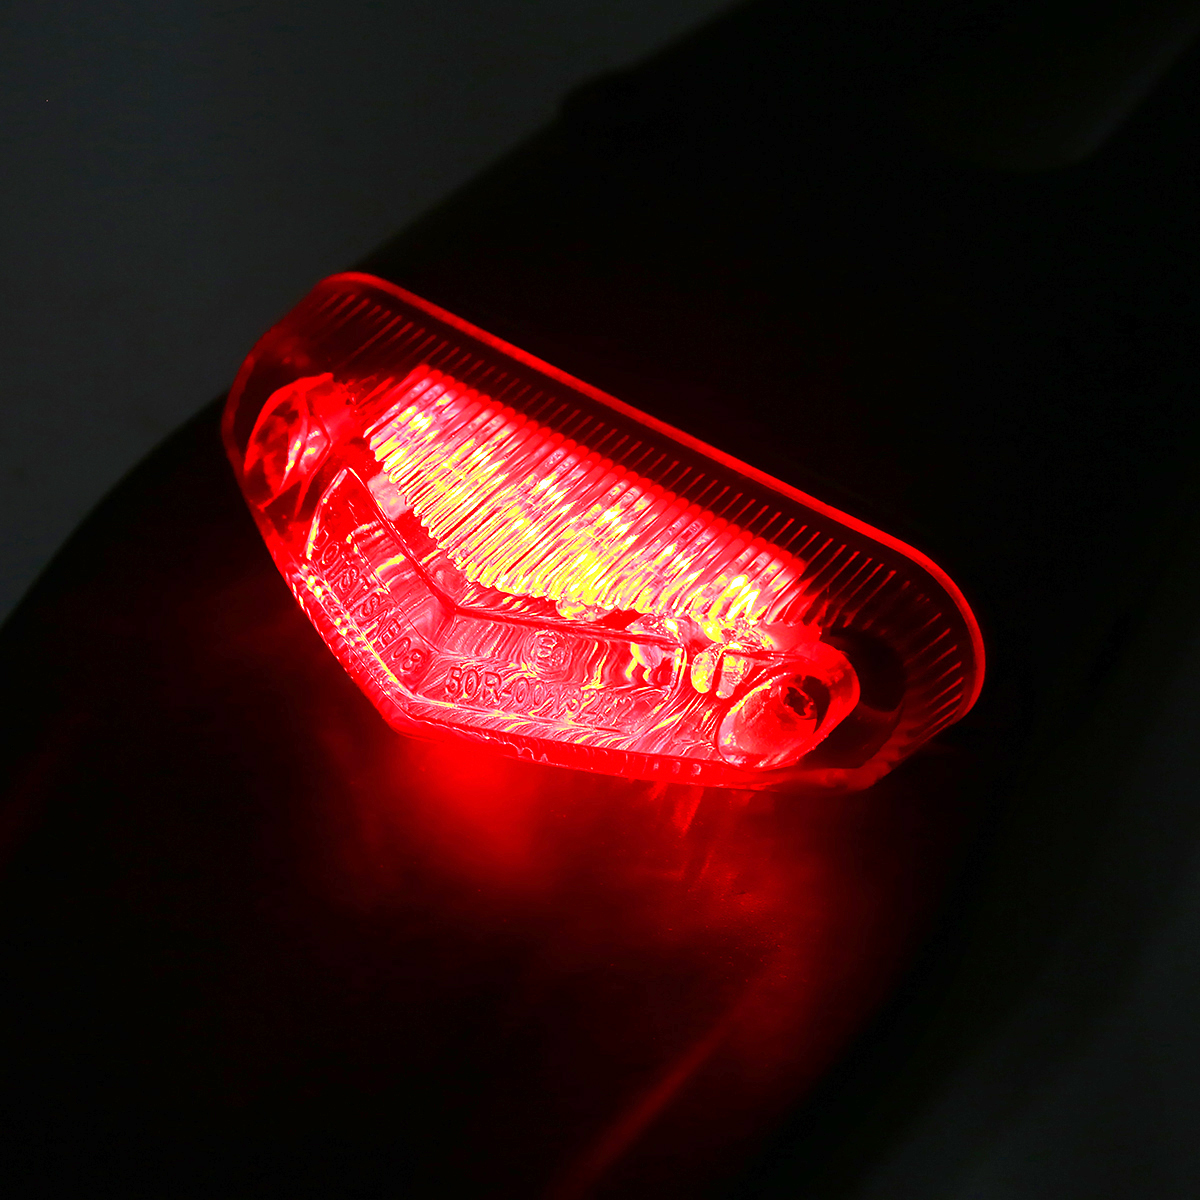 Image 5 - For Honda For Kawasaki 1PC 12V 0.3W Motorcycle Rear Fender LED Stop Light Red Tail Lamp Waterproof Electronic Board